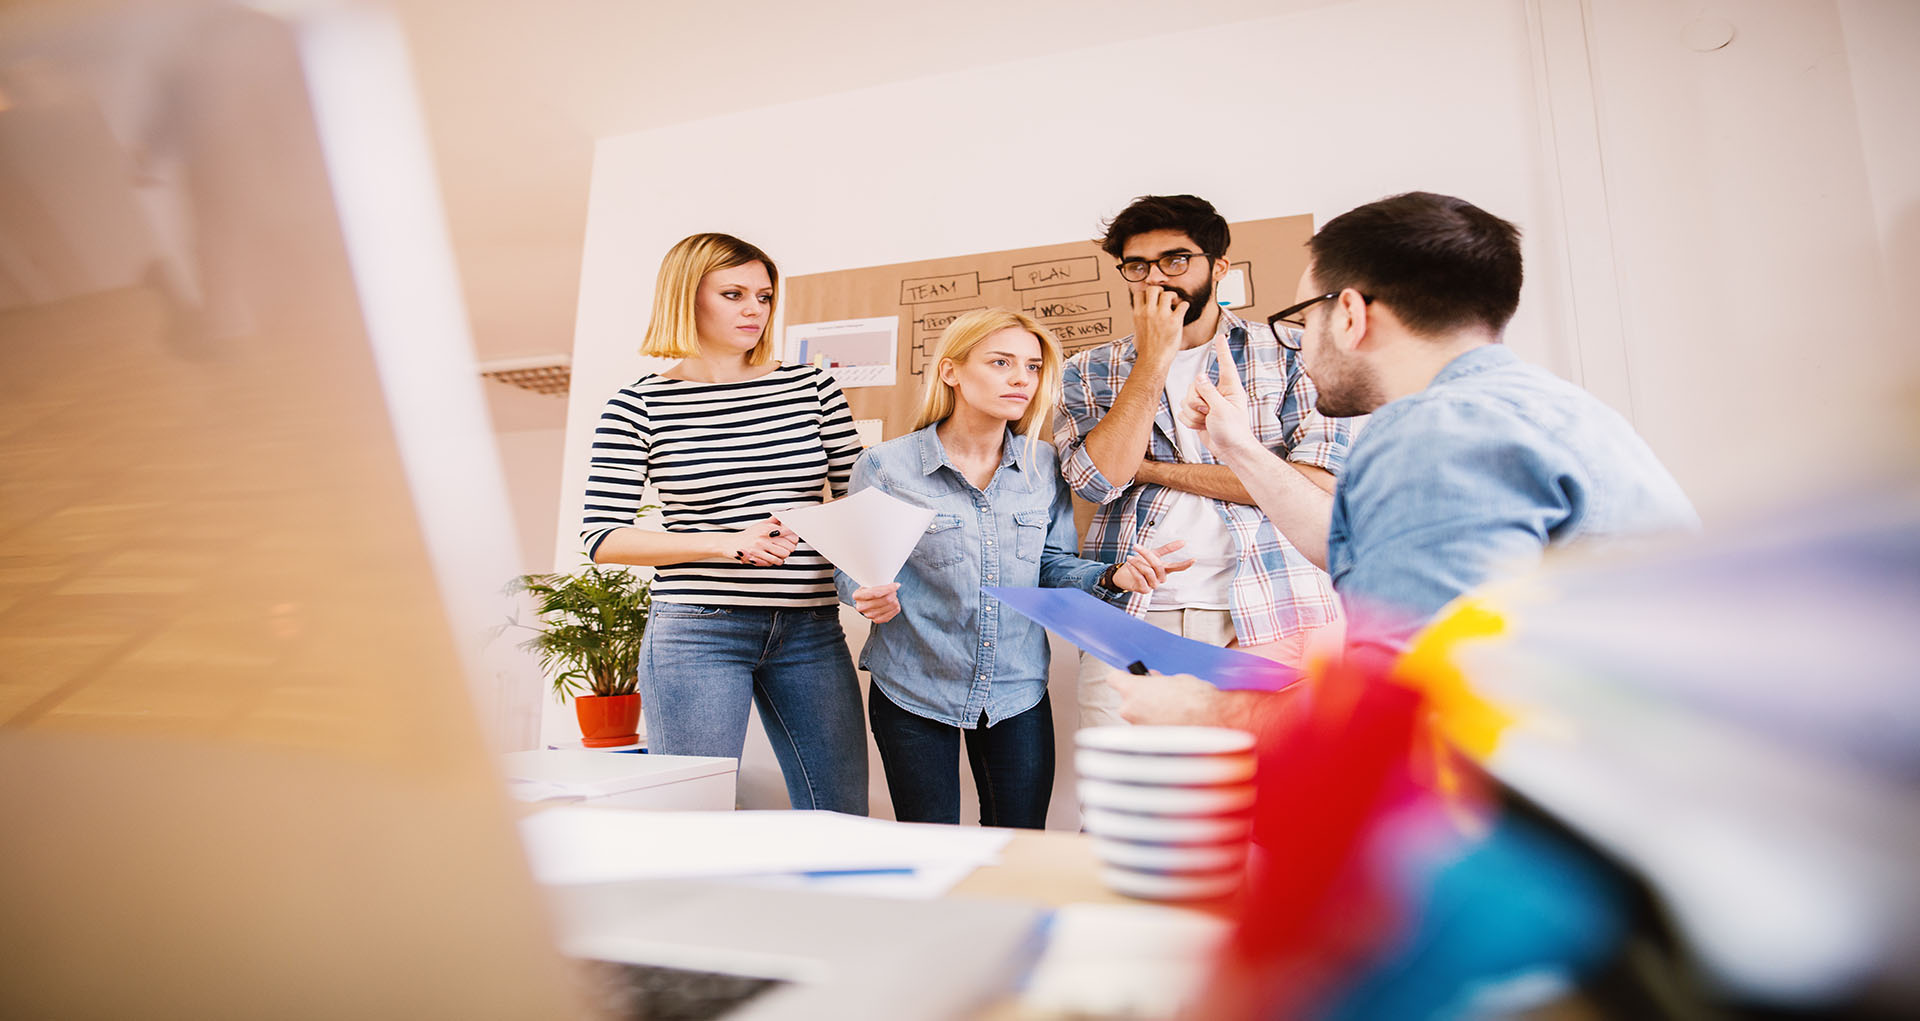 Eye Rolling Rushing and Interrupting – What's the Workplace Damage